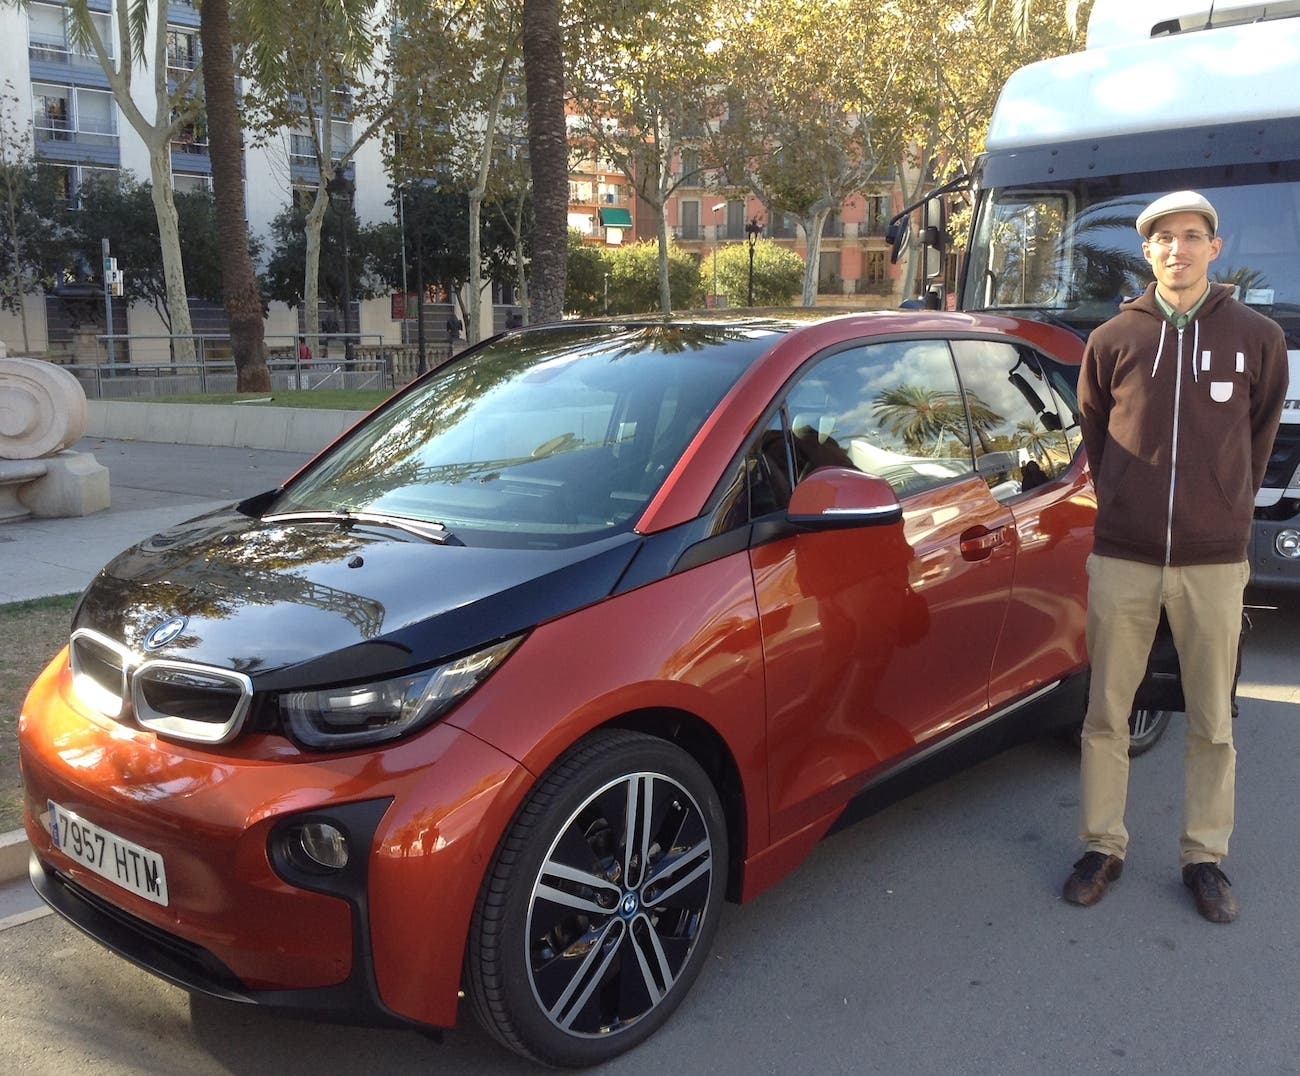 Bmw I3 Mpge 124 Officially The Most Efficient Car In